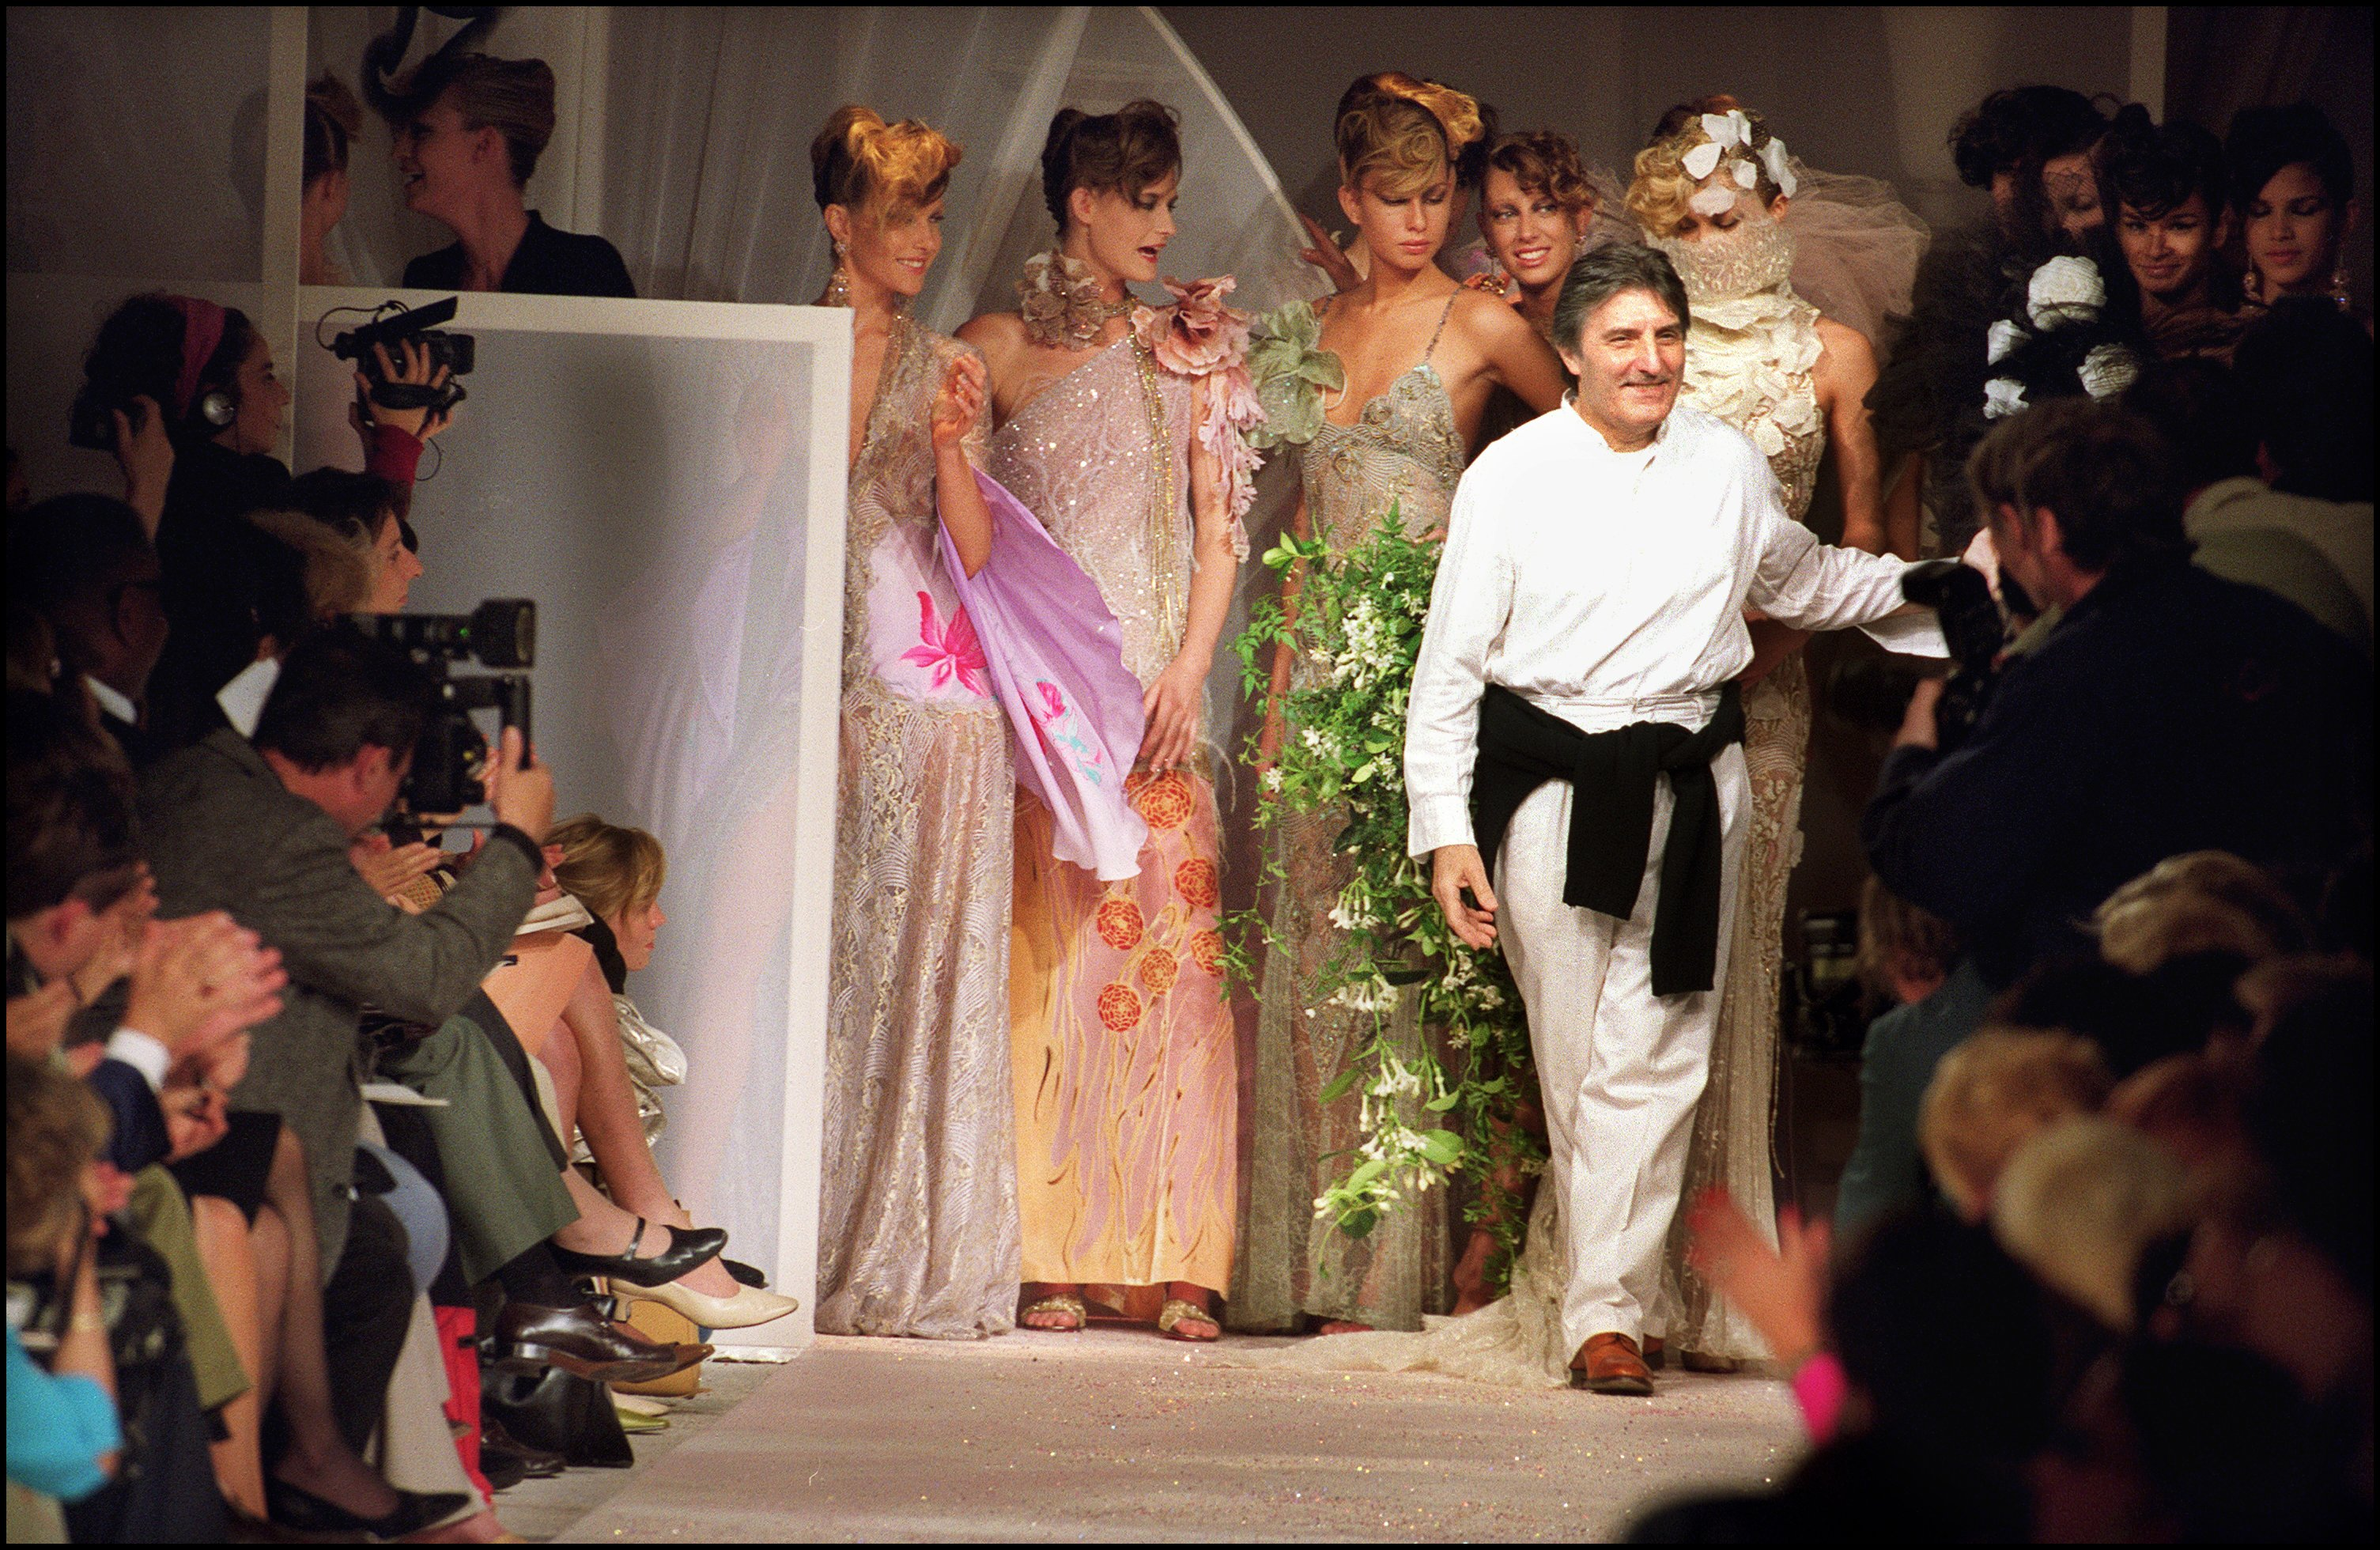 Emmanuel Ungaro takes his bow at the end of his label's 2001 autumn/winter haute couture fashion show on n Oct. 7, 2000 in Paris, France.